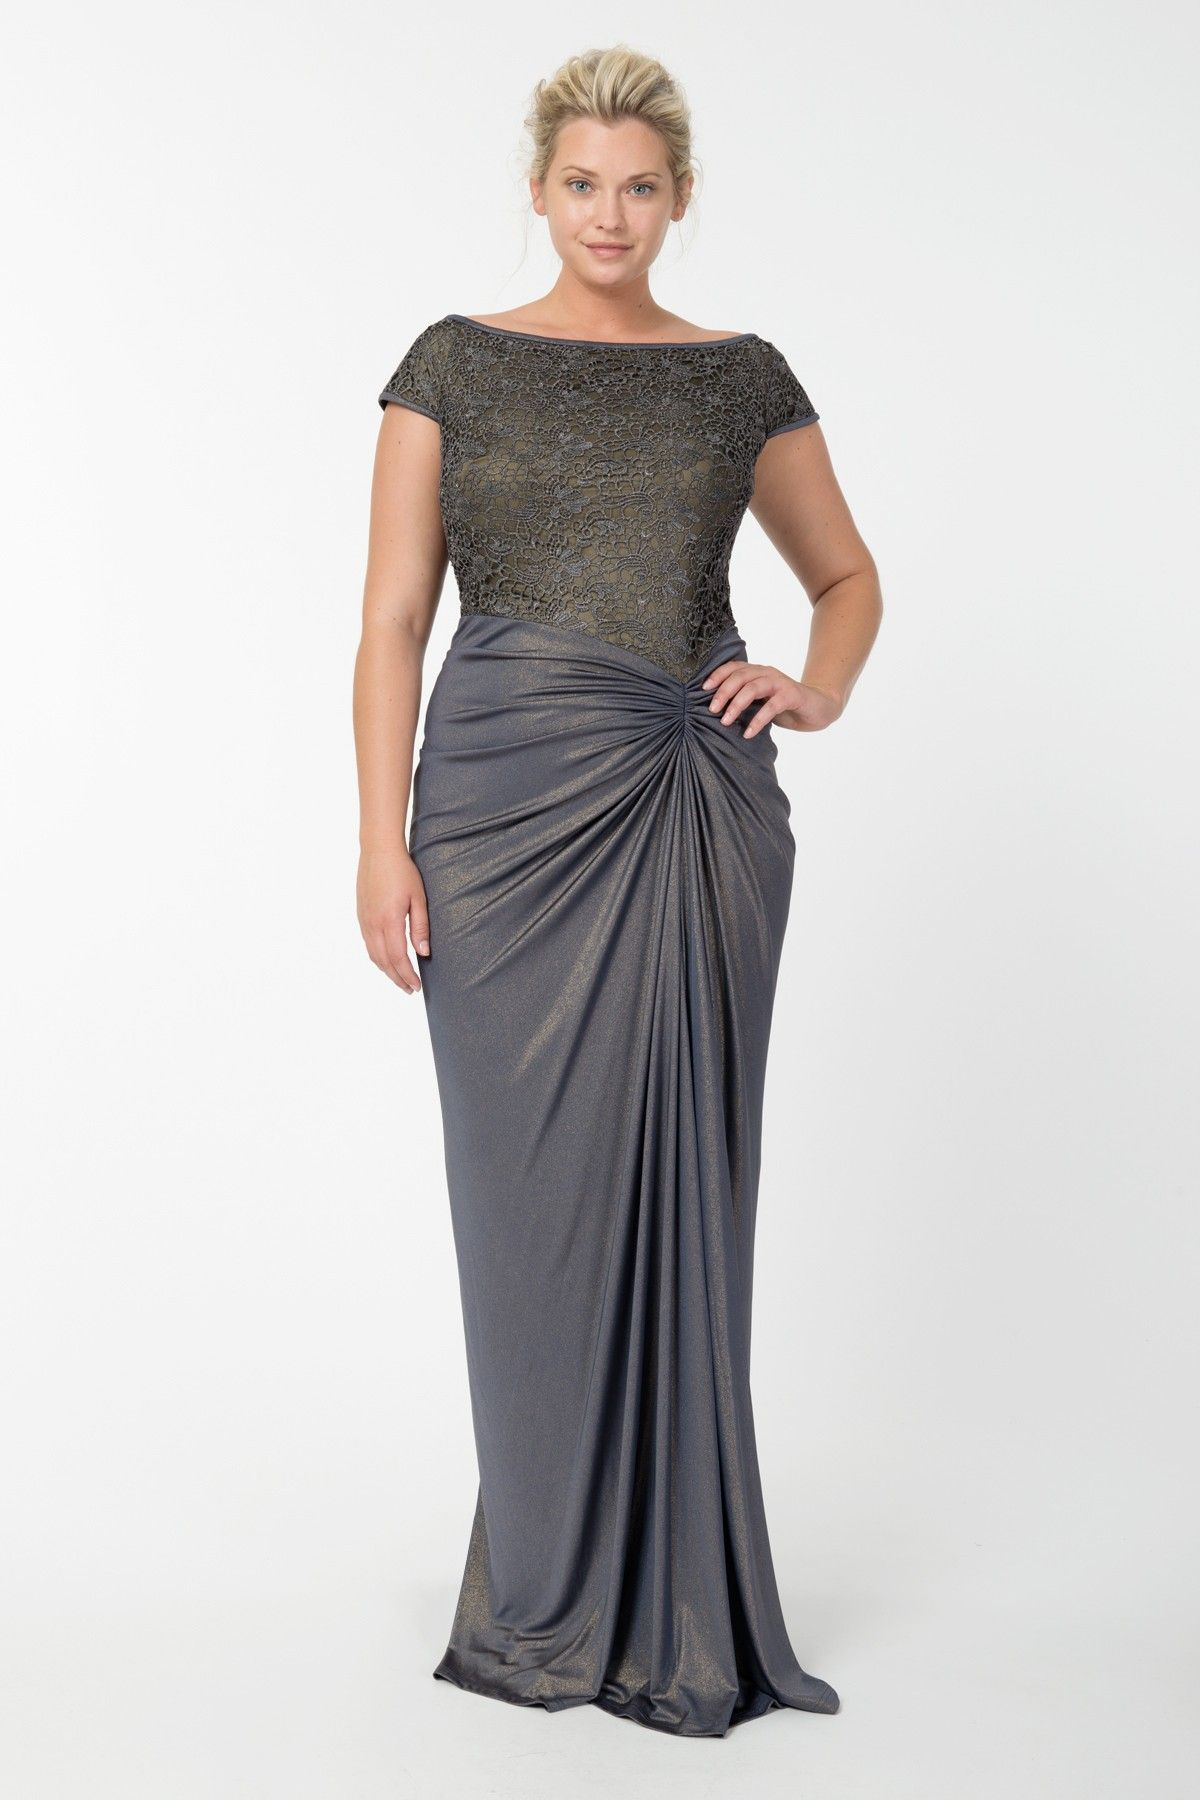 20 Plus Size Evening Dresses To Look Like Queen My Style